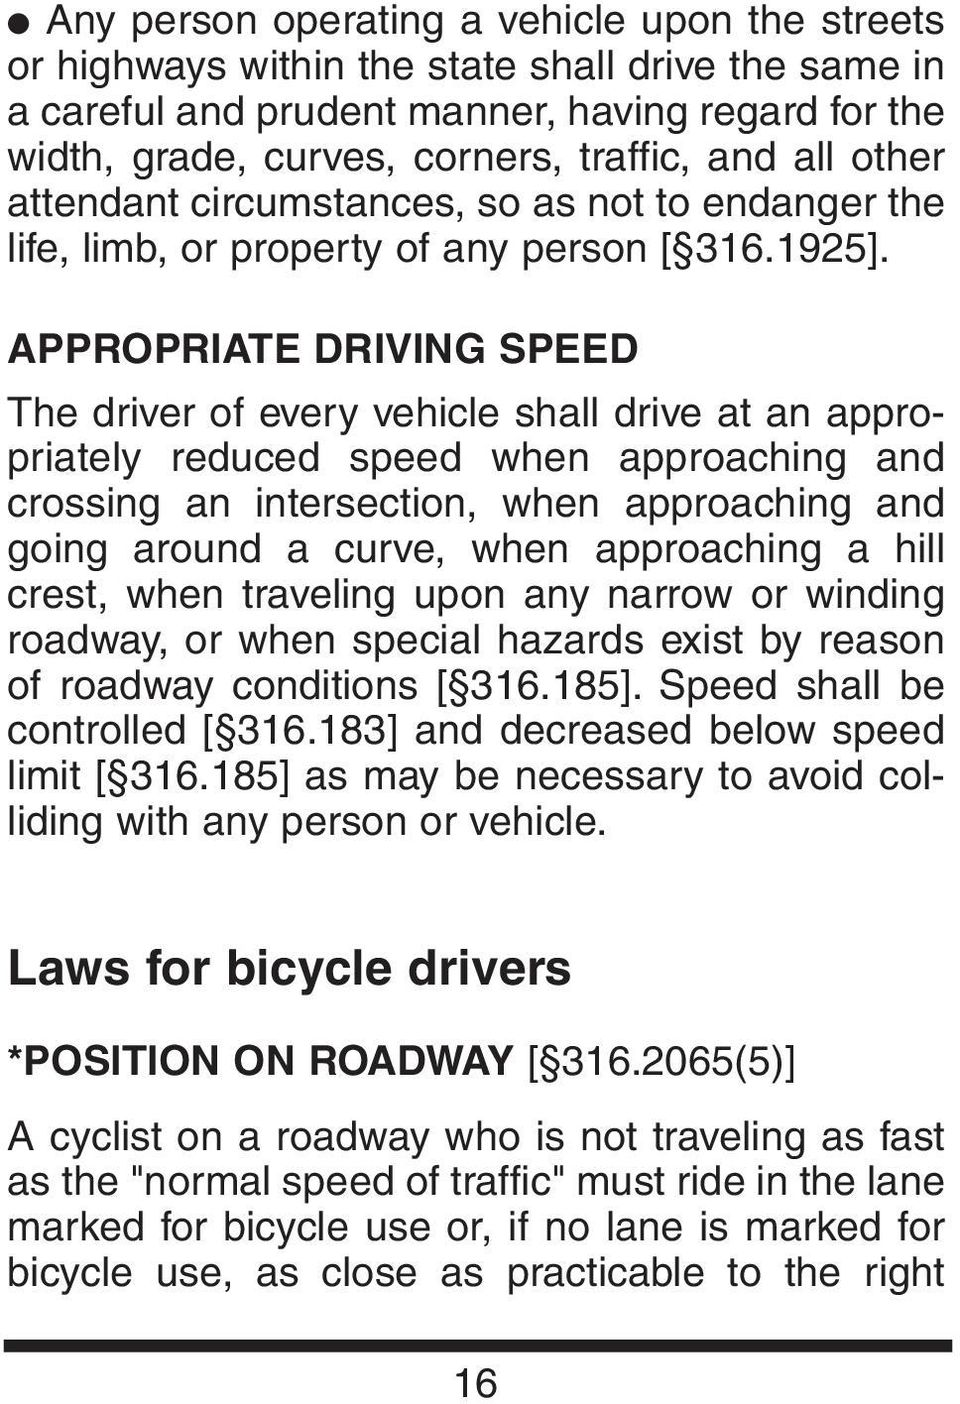 APPROPRIATE DRIVING SPEED The driver of every vehicle shall drive at an appropriately reduced speed when approaching and crossing an intersection, when approaching and going around a curve, when